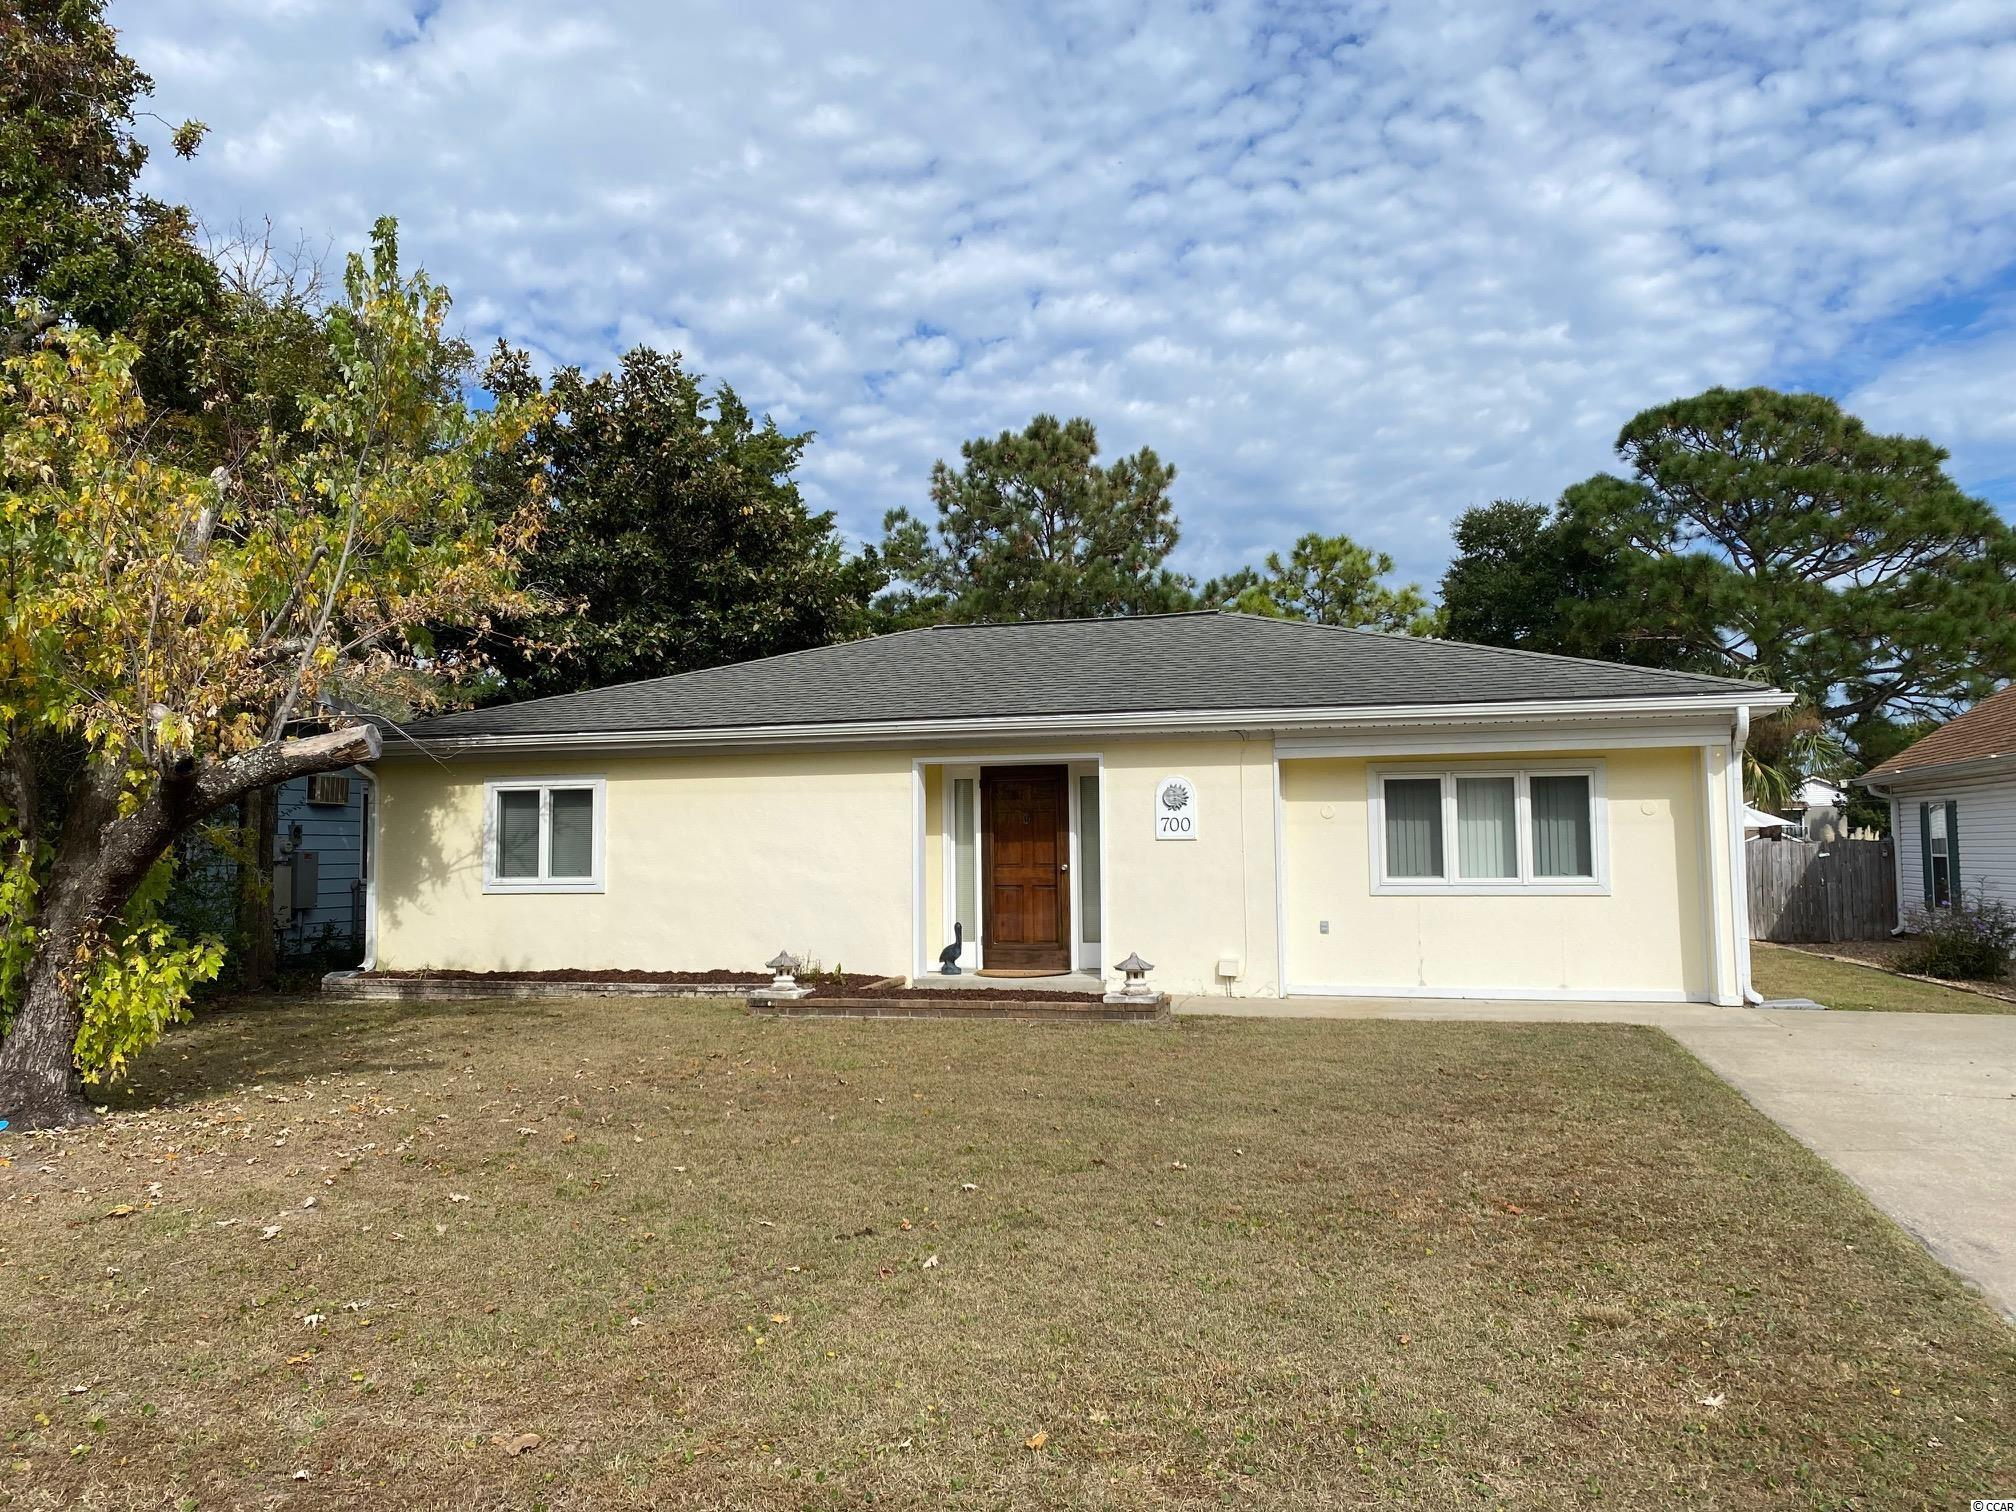 700 26th Ave. S North Myrtle Beach, SC 29582